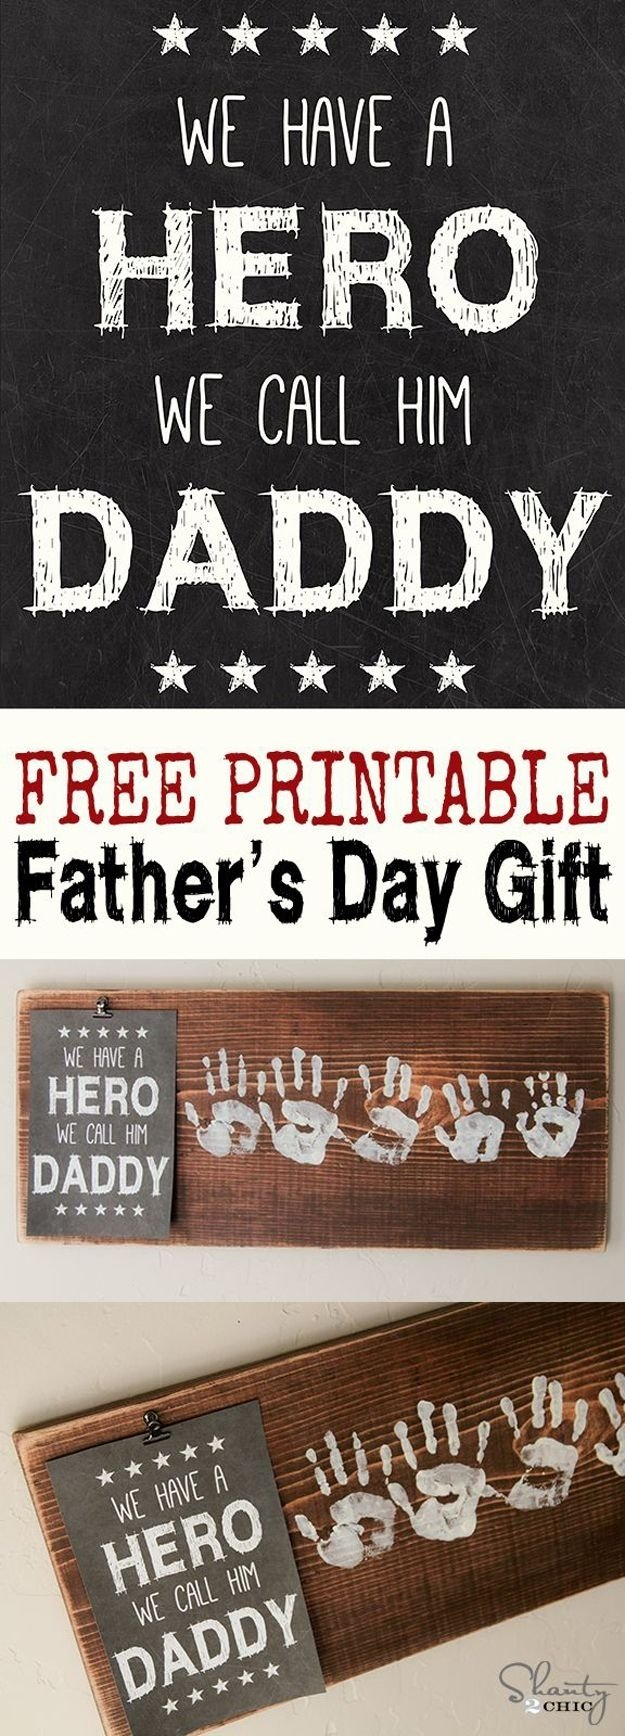 10 Gorgeous Birthday Gift Ideas For Dad From Son 73 Best Fathers Day Images